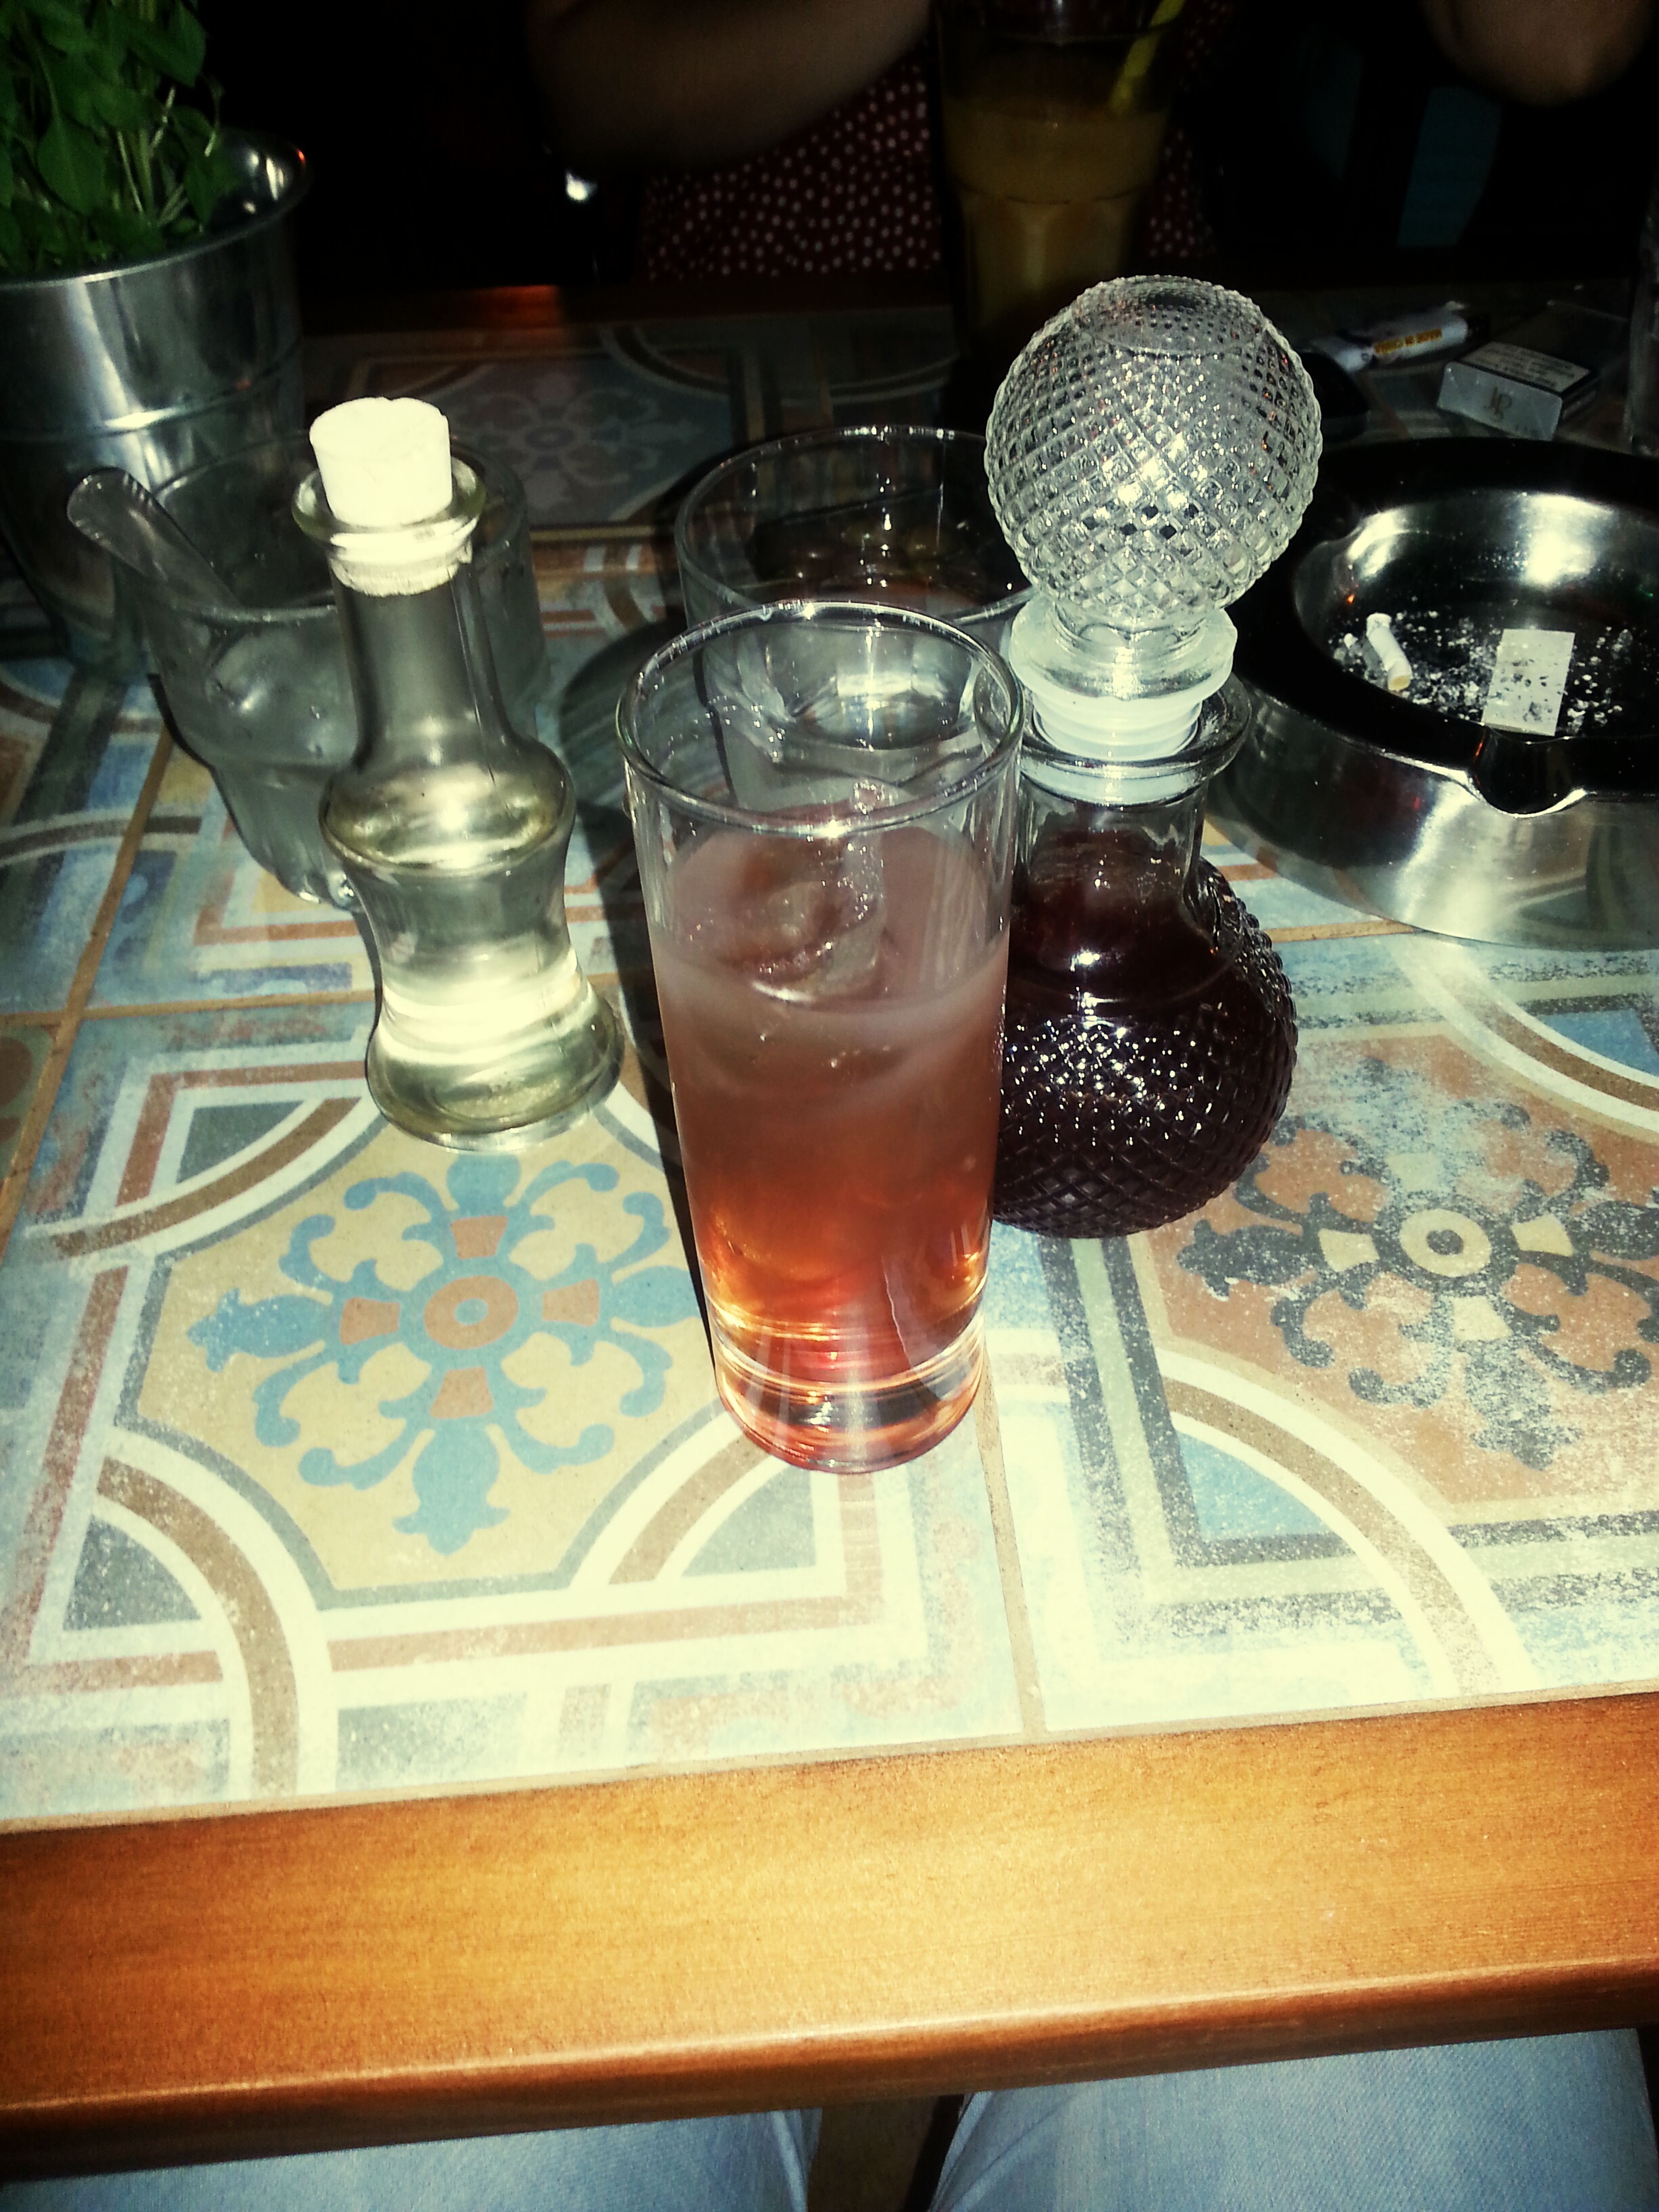 Old Fashioned Nightbeforeexams Drinking Ouzo With Cherry Juice